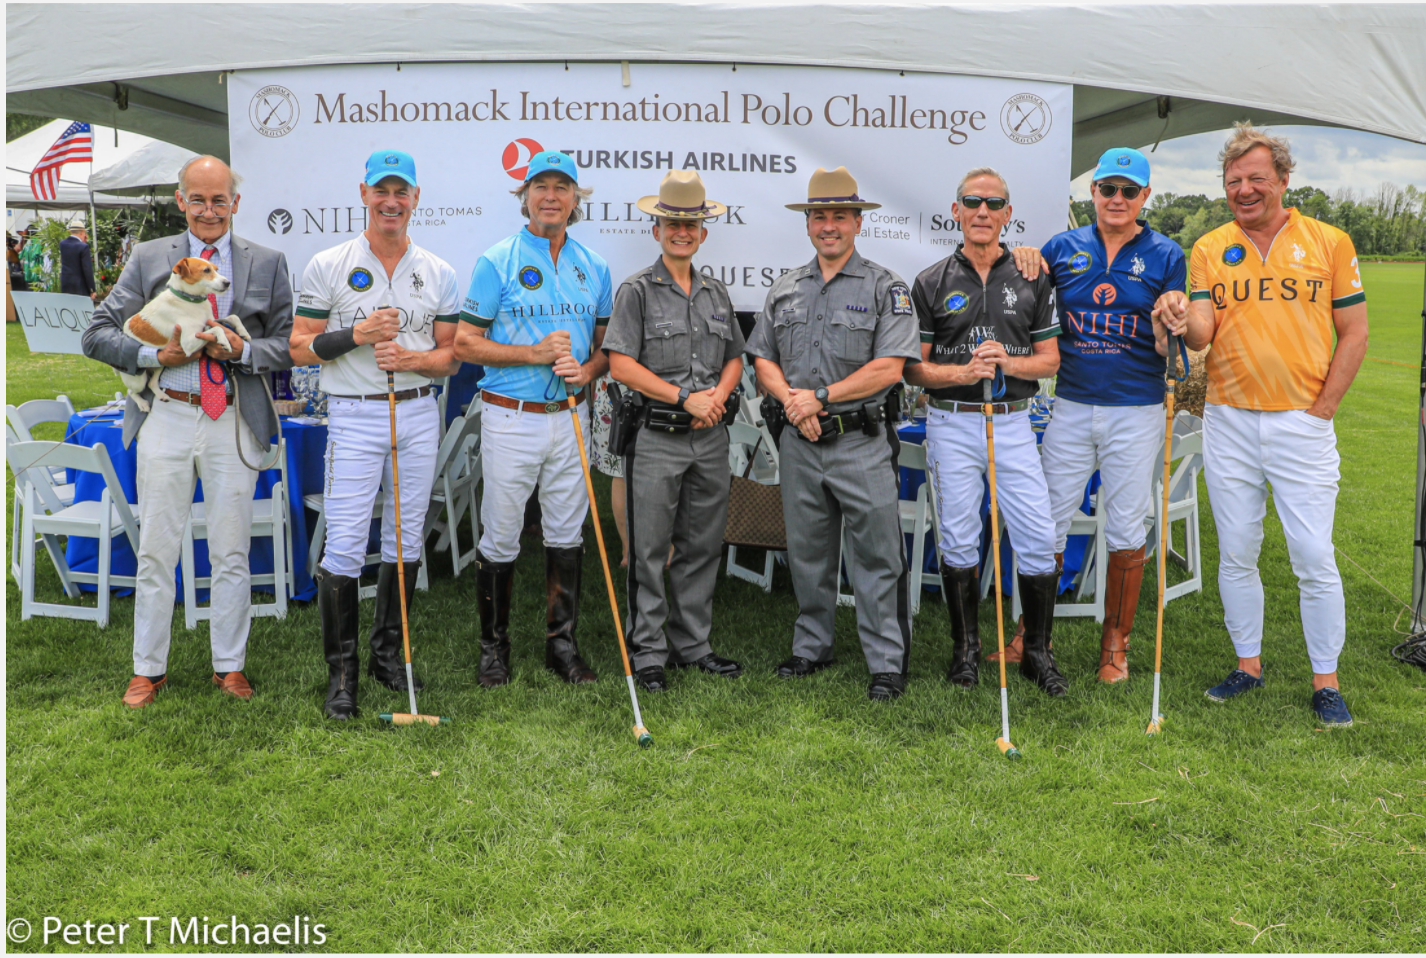 What to wear to 22 Mashomack International Polo Challenge ?  Karen Klopp and Hilary Dick chose the best fashion to celebrate the Polo Weekend in style.